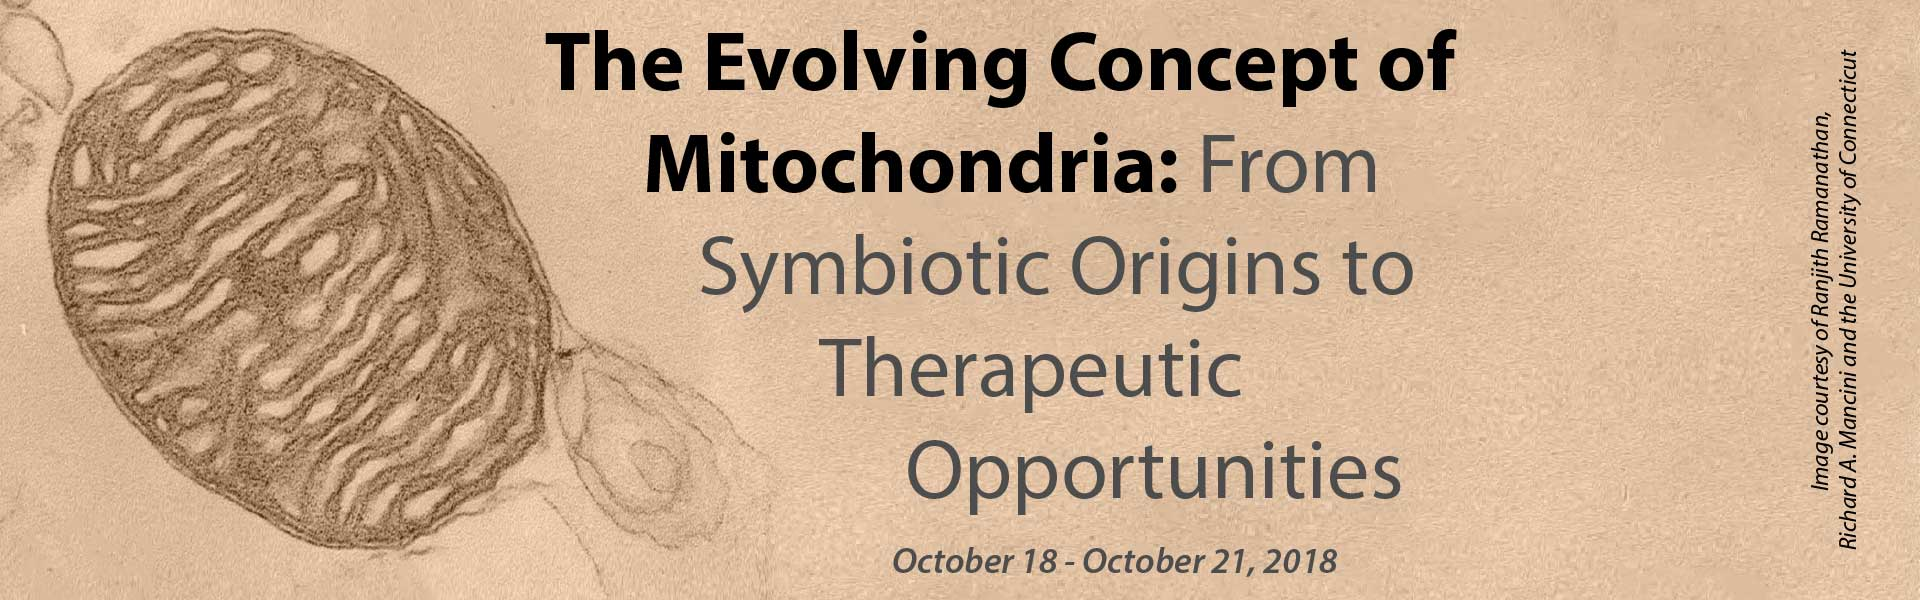 Mitochondria Meeting: From Symbiotic Origins to Therapeutic Opportunities